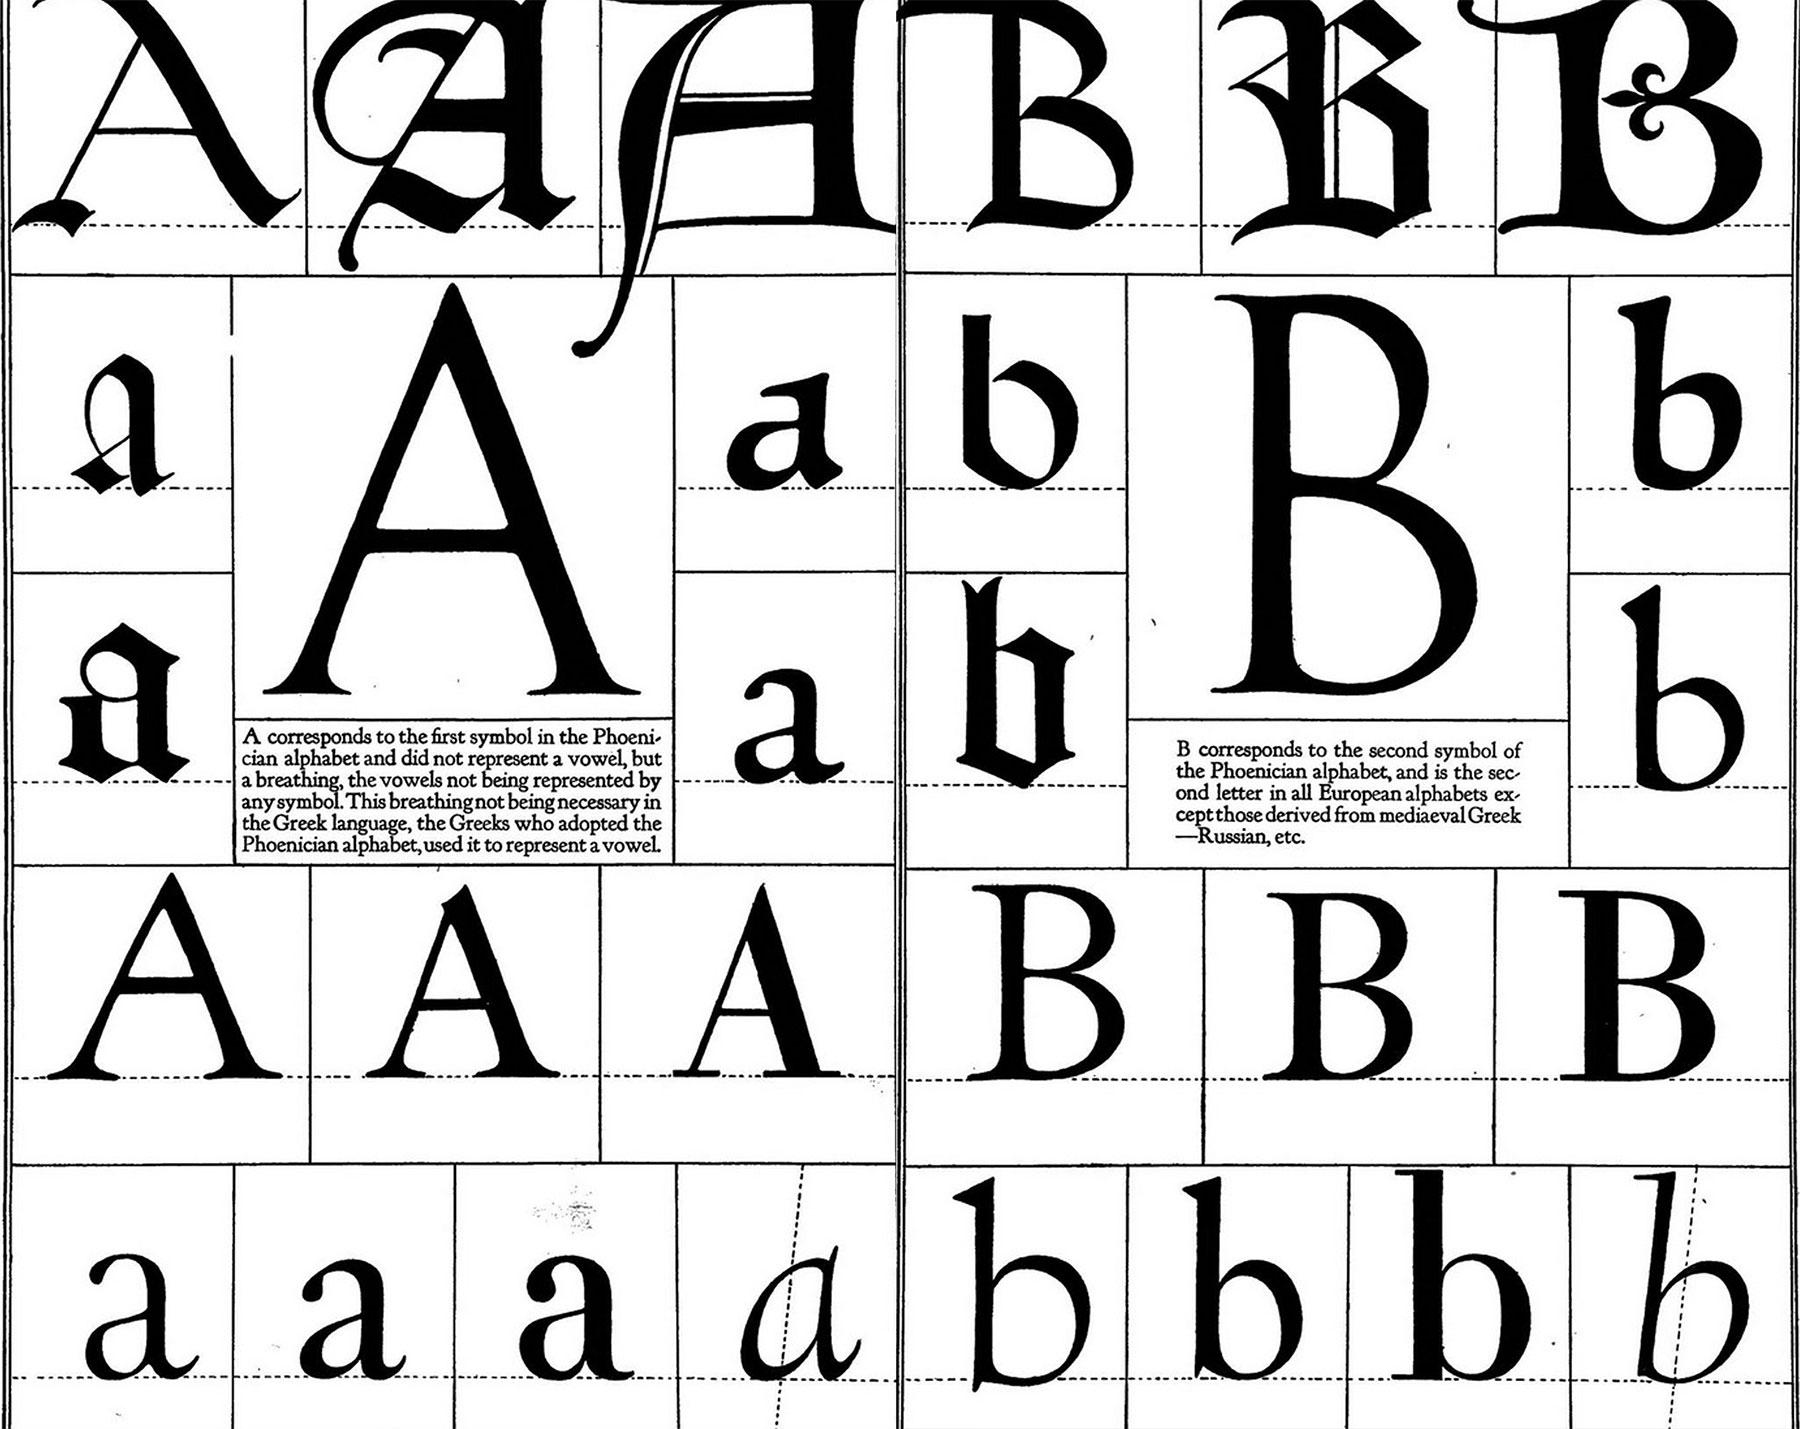 The-alphabet-fifteen-interpretative-designs-drawn-and-arranged-with-explanatory-text-and-illustrations-Frederic-W-Goudy-bibliotheque-index-grafik-couv